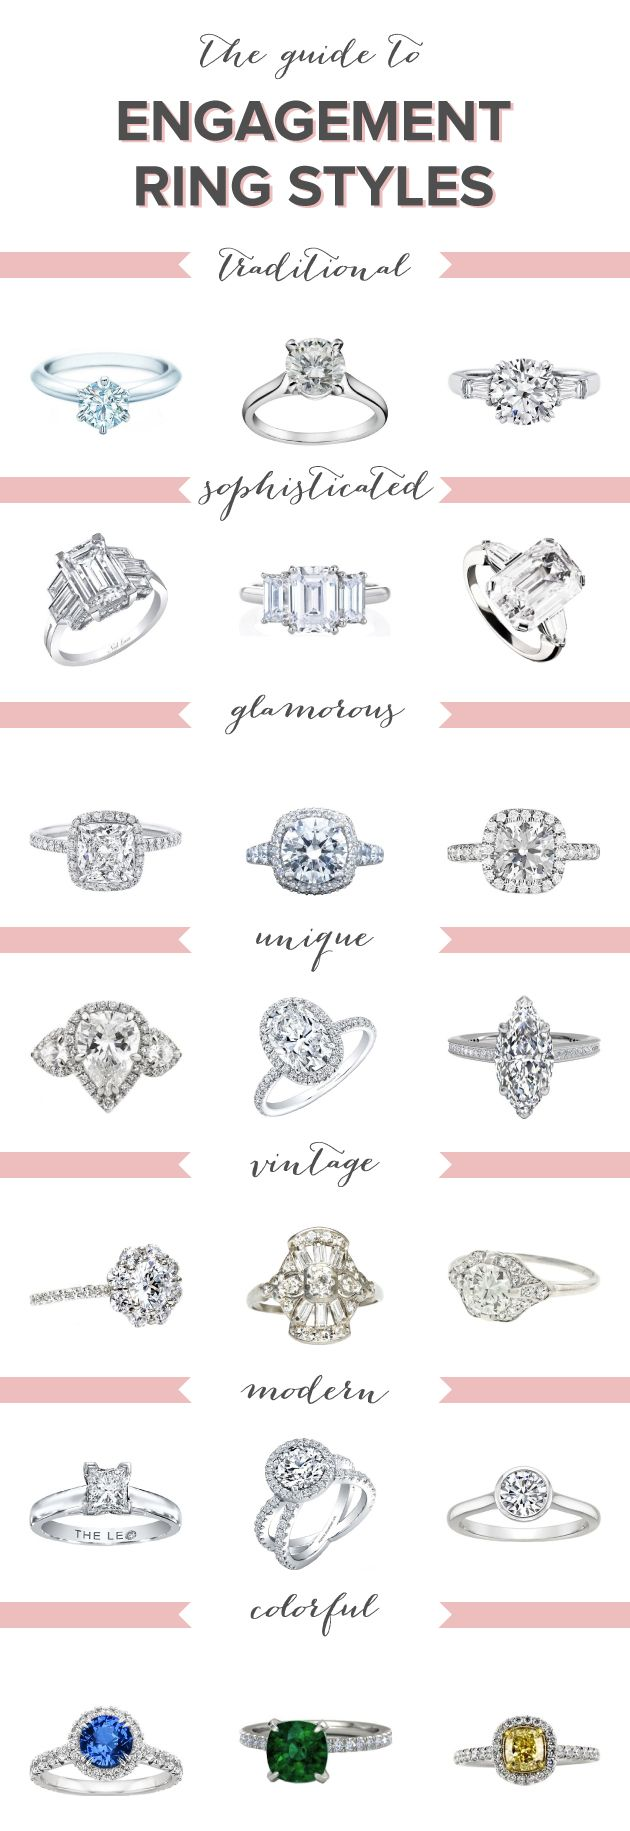 Engagement Ring Styles on Pinterest